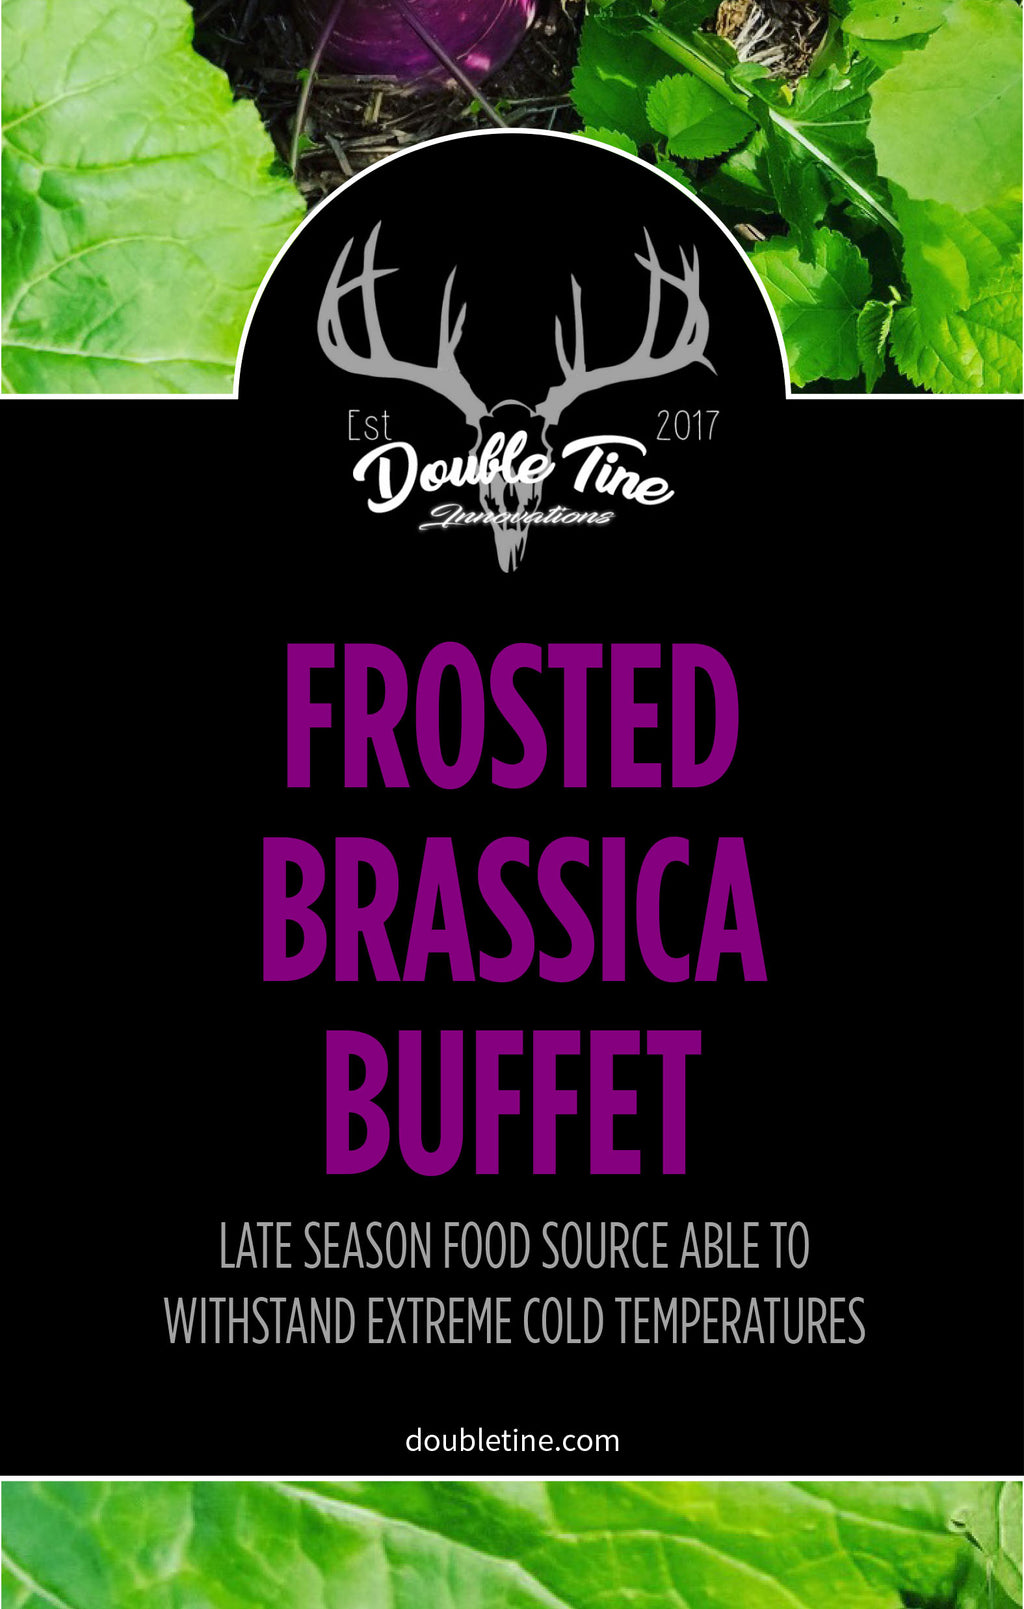 Frosted Brassica Buffet